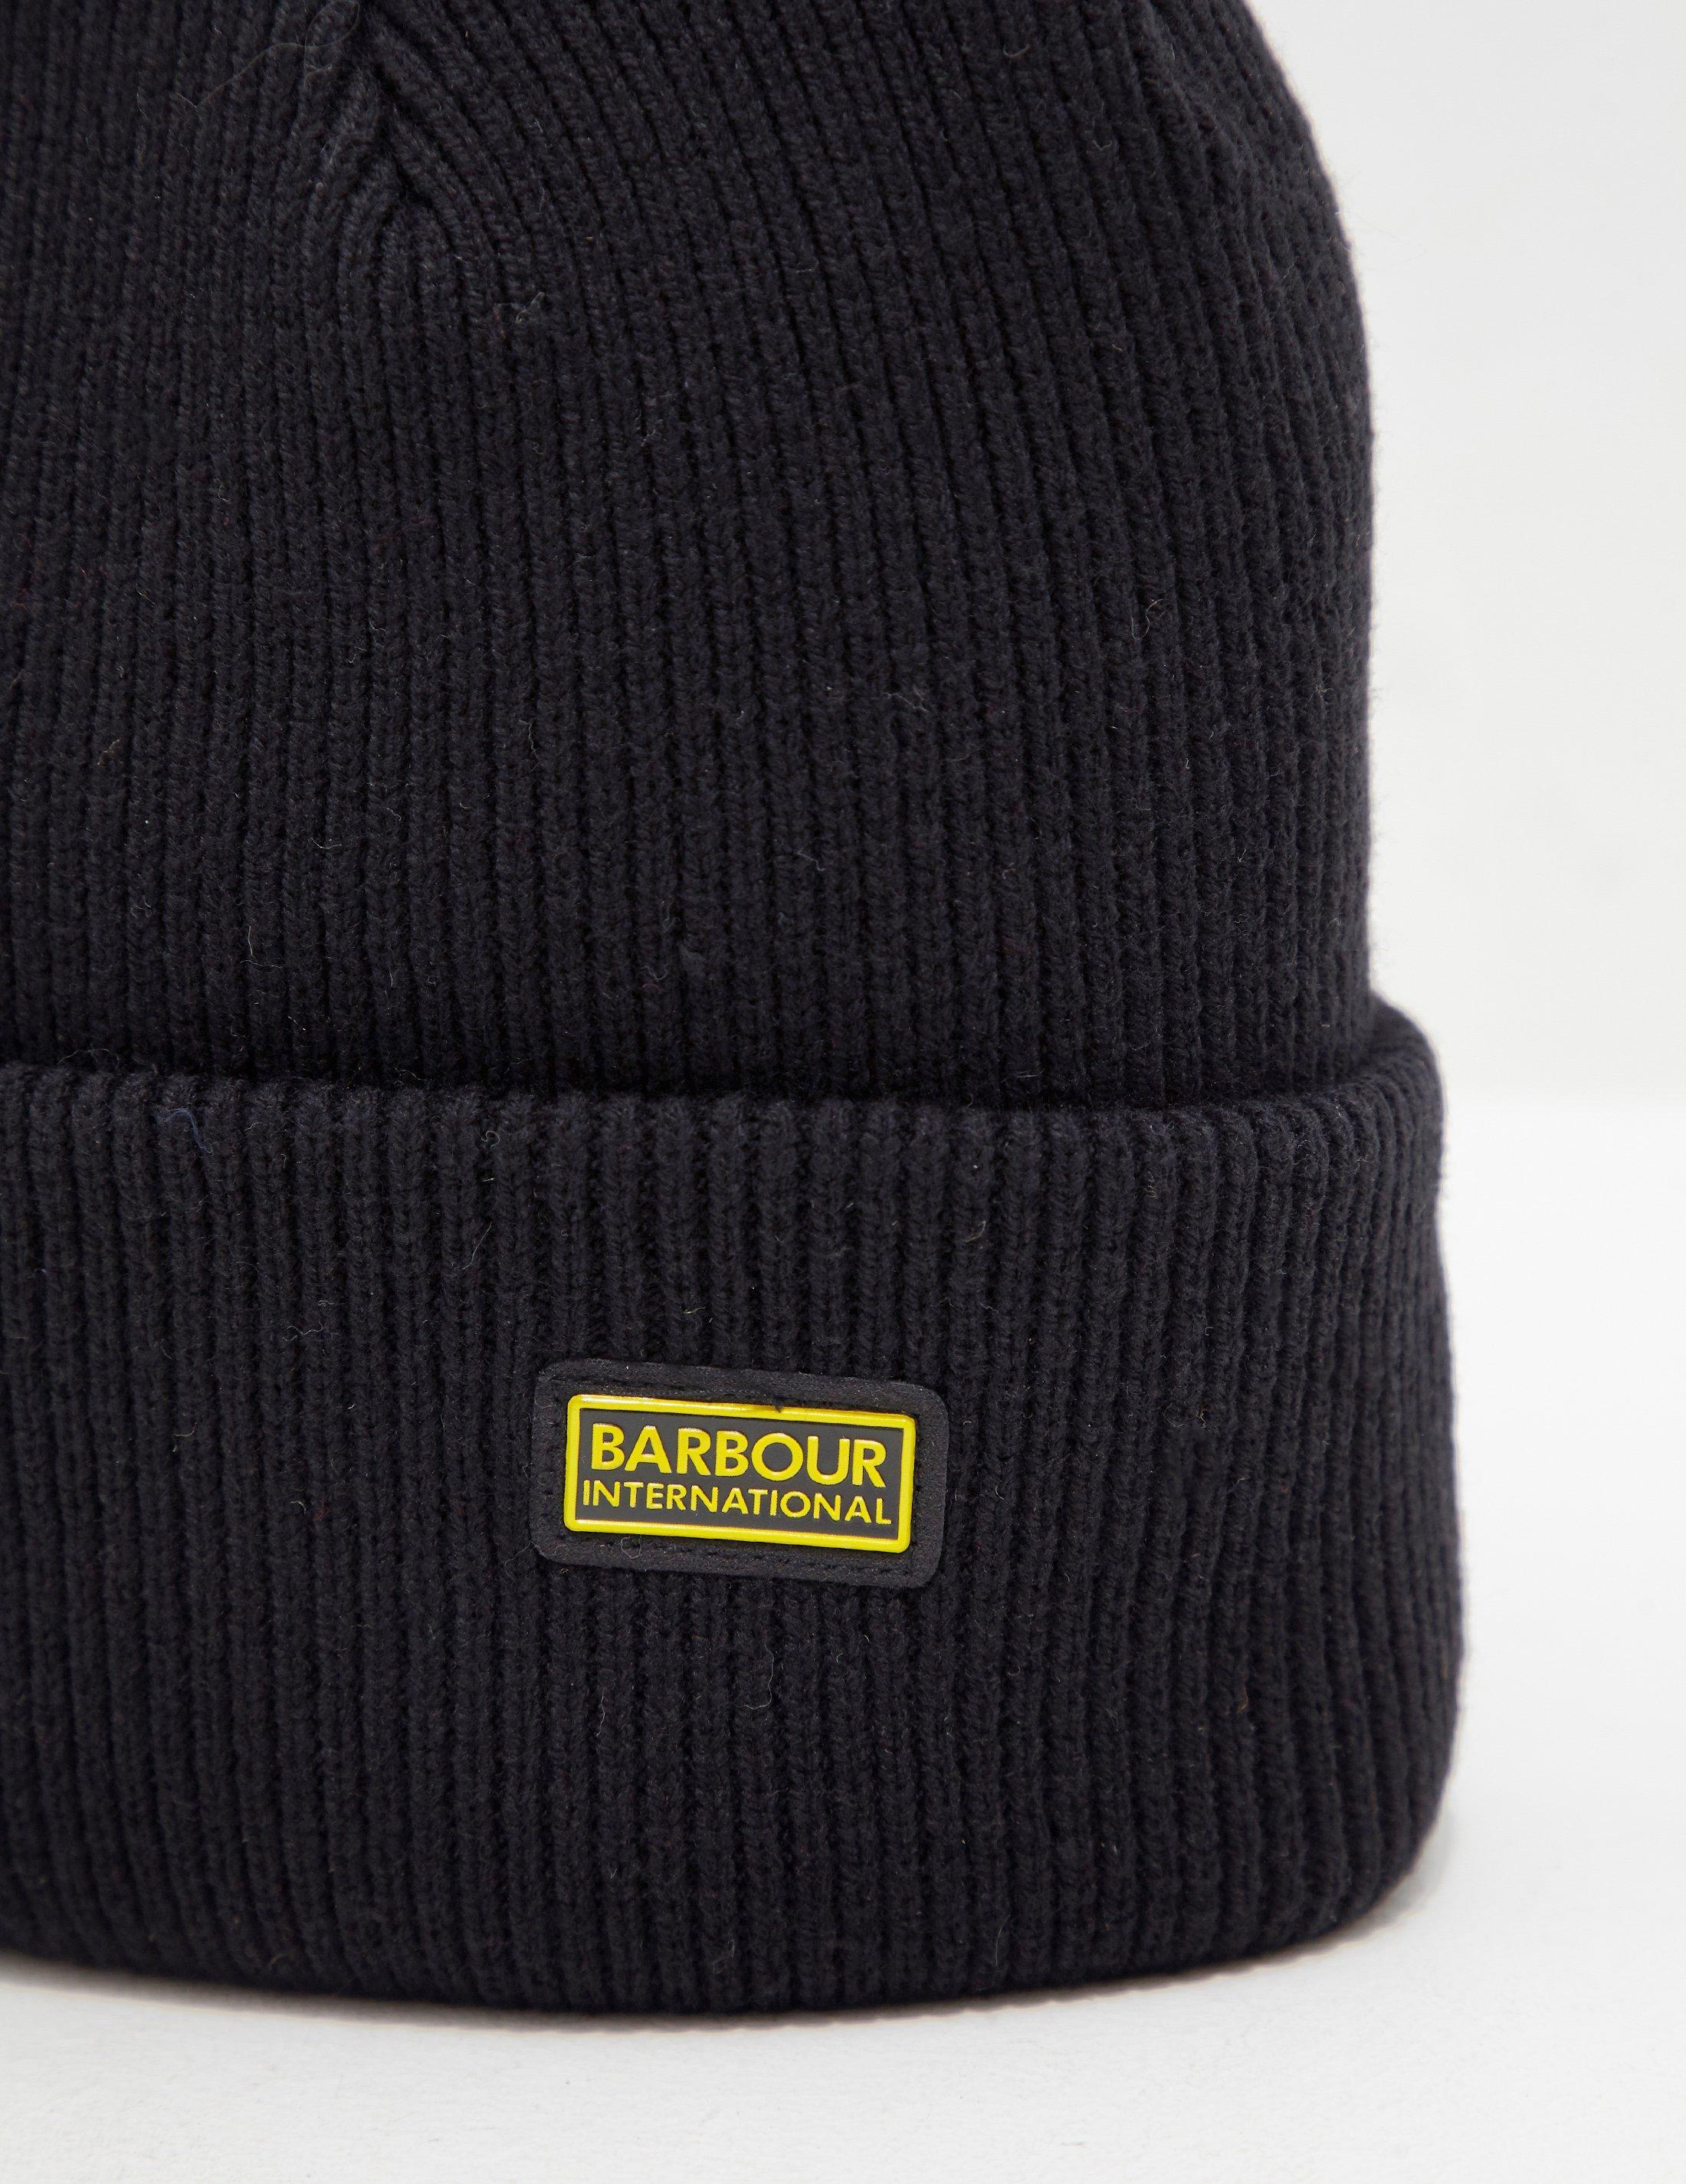 4f913c2419e Barbour International Beanie - Exclusively To Tessuti Black in Black for Men  - Lyst